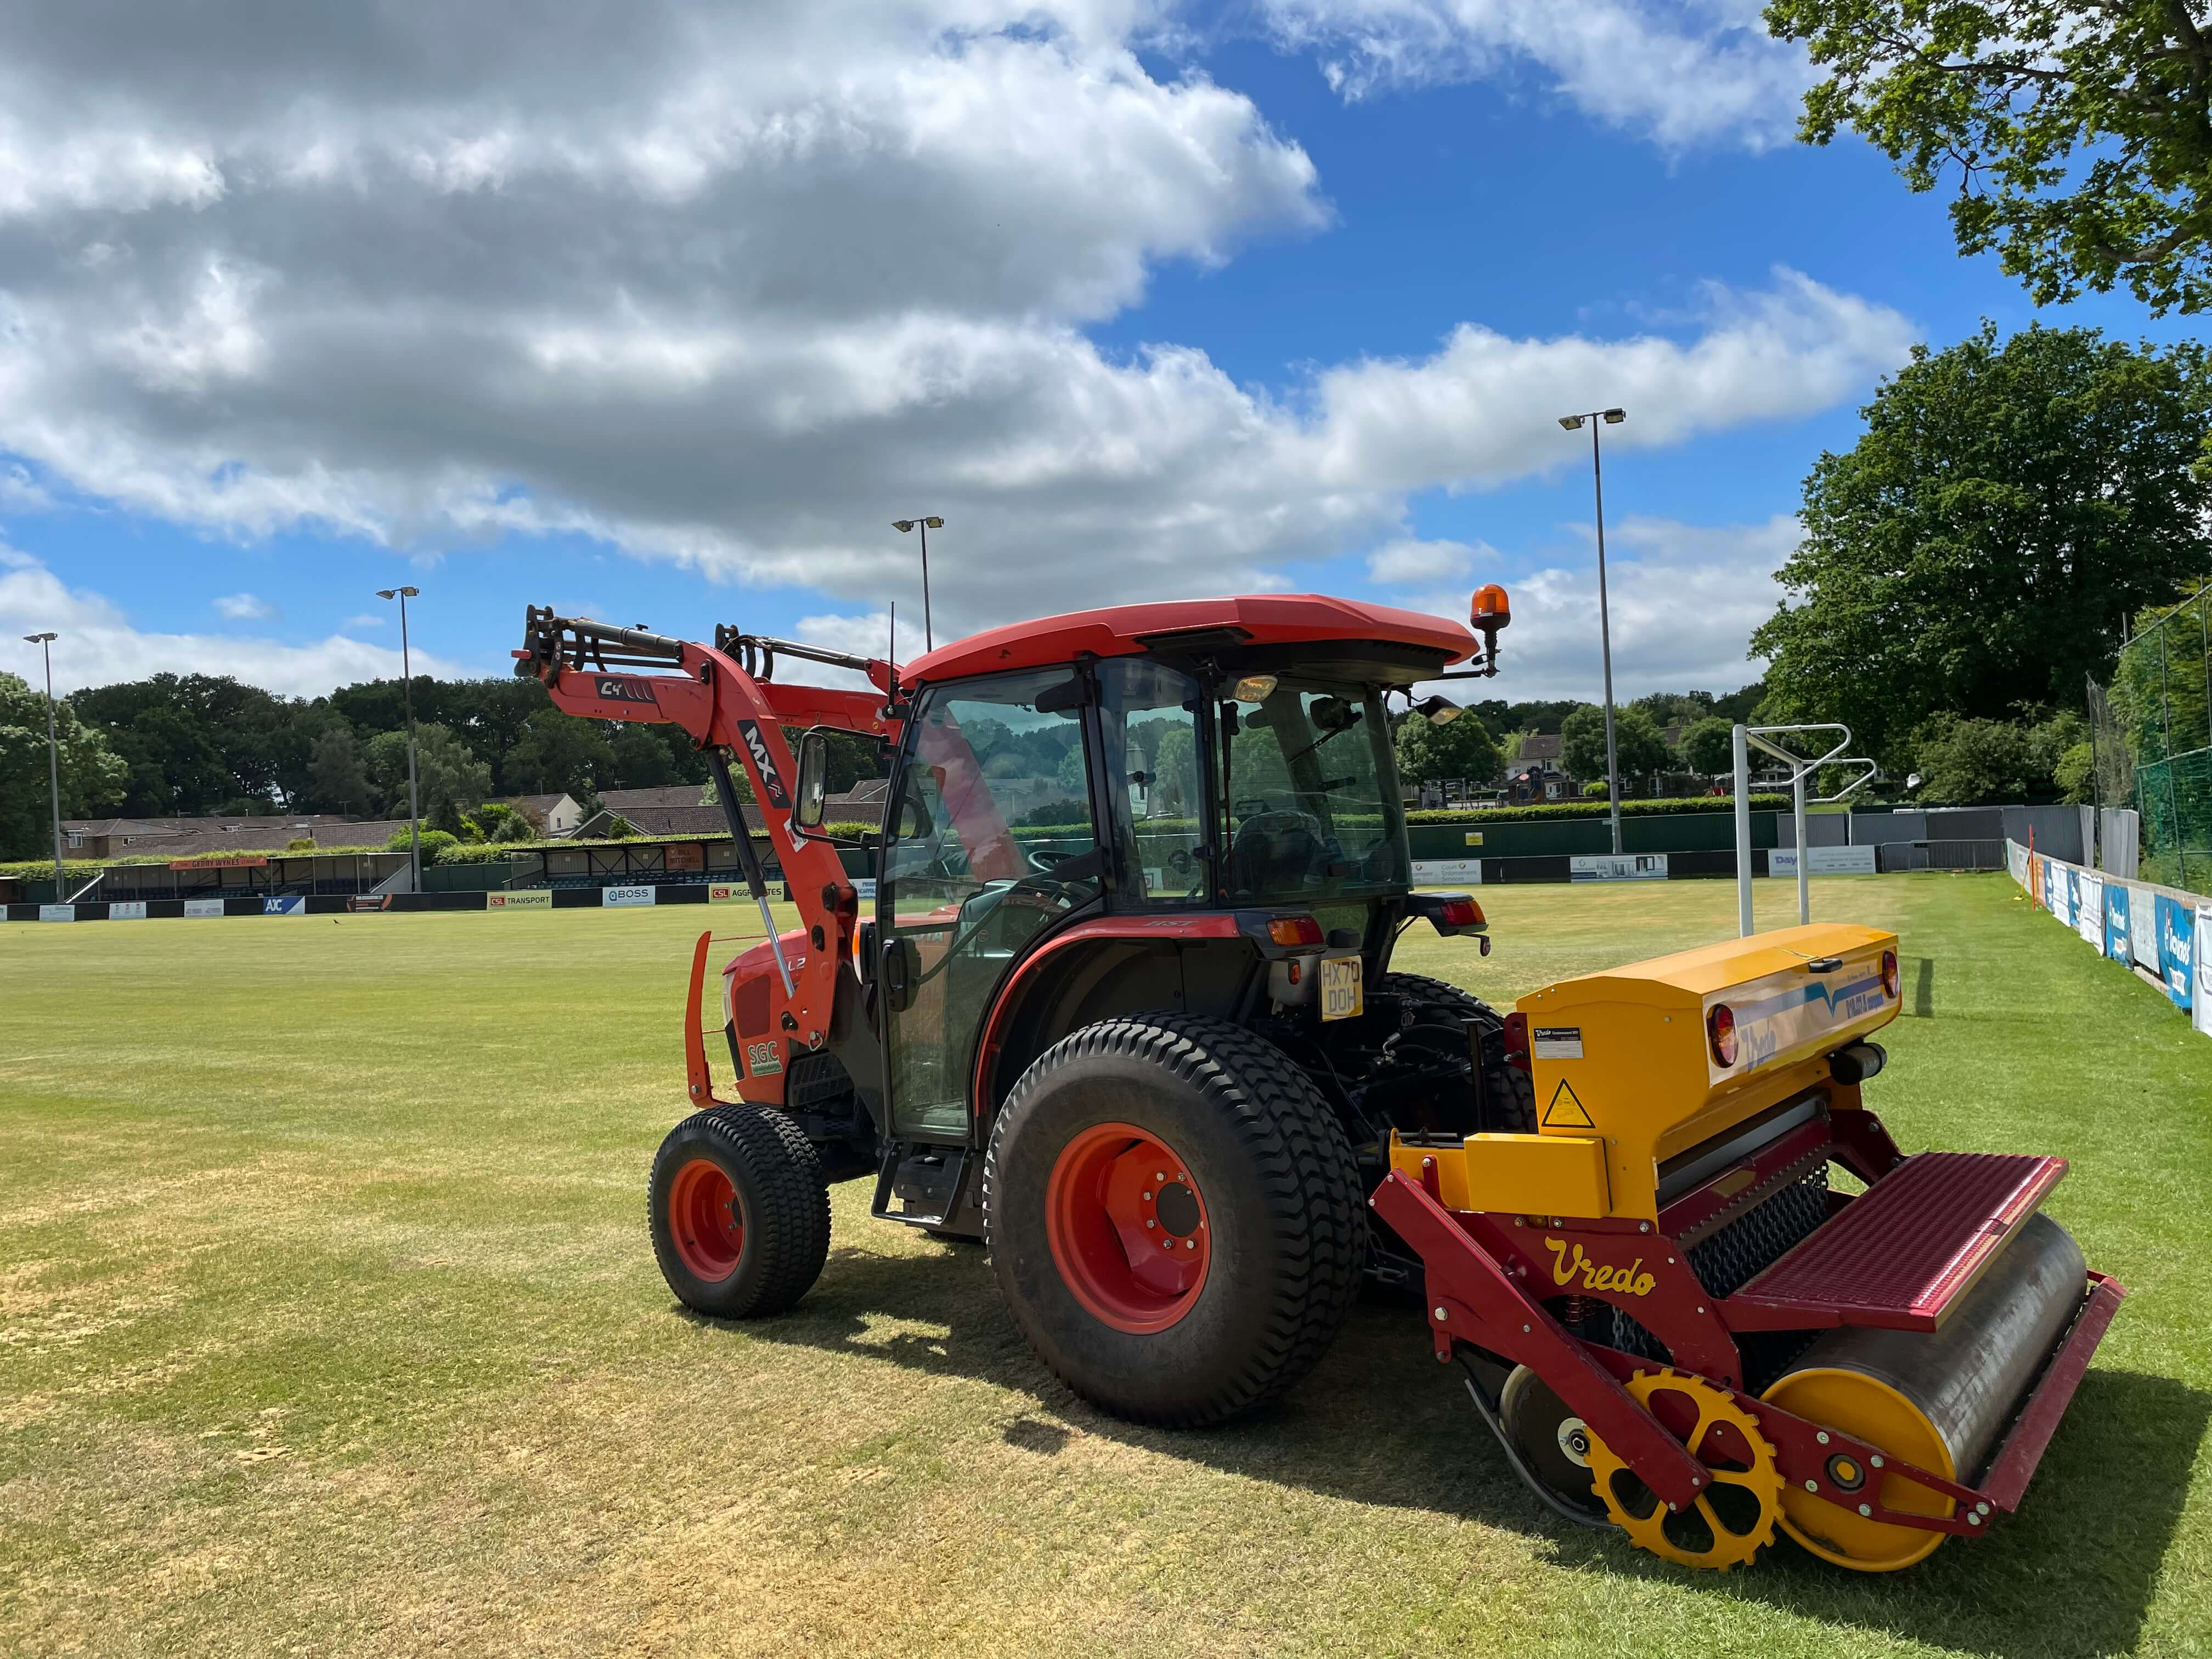 Tractor with seeder on football pitch